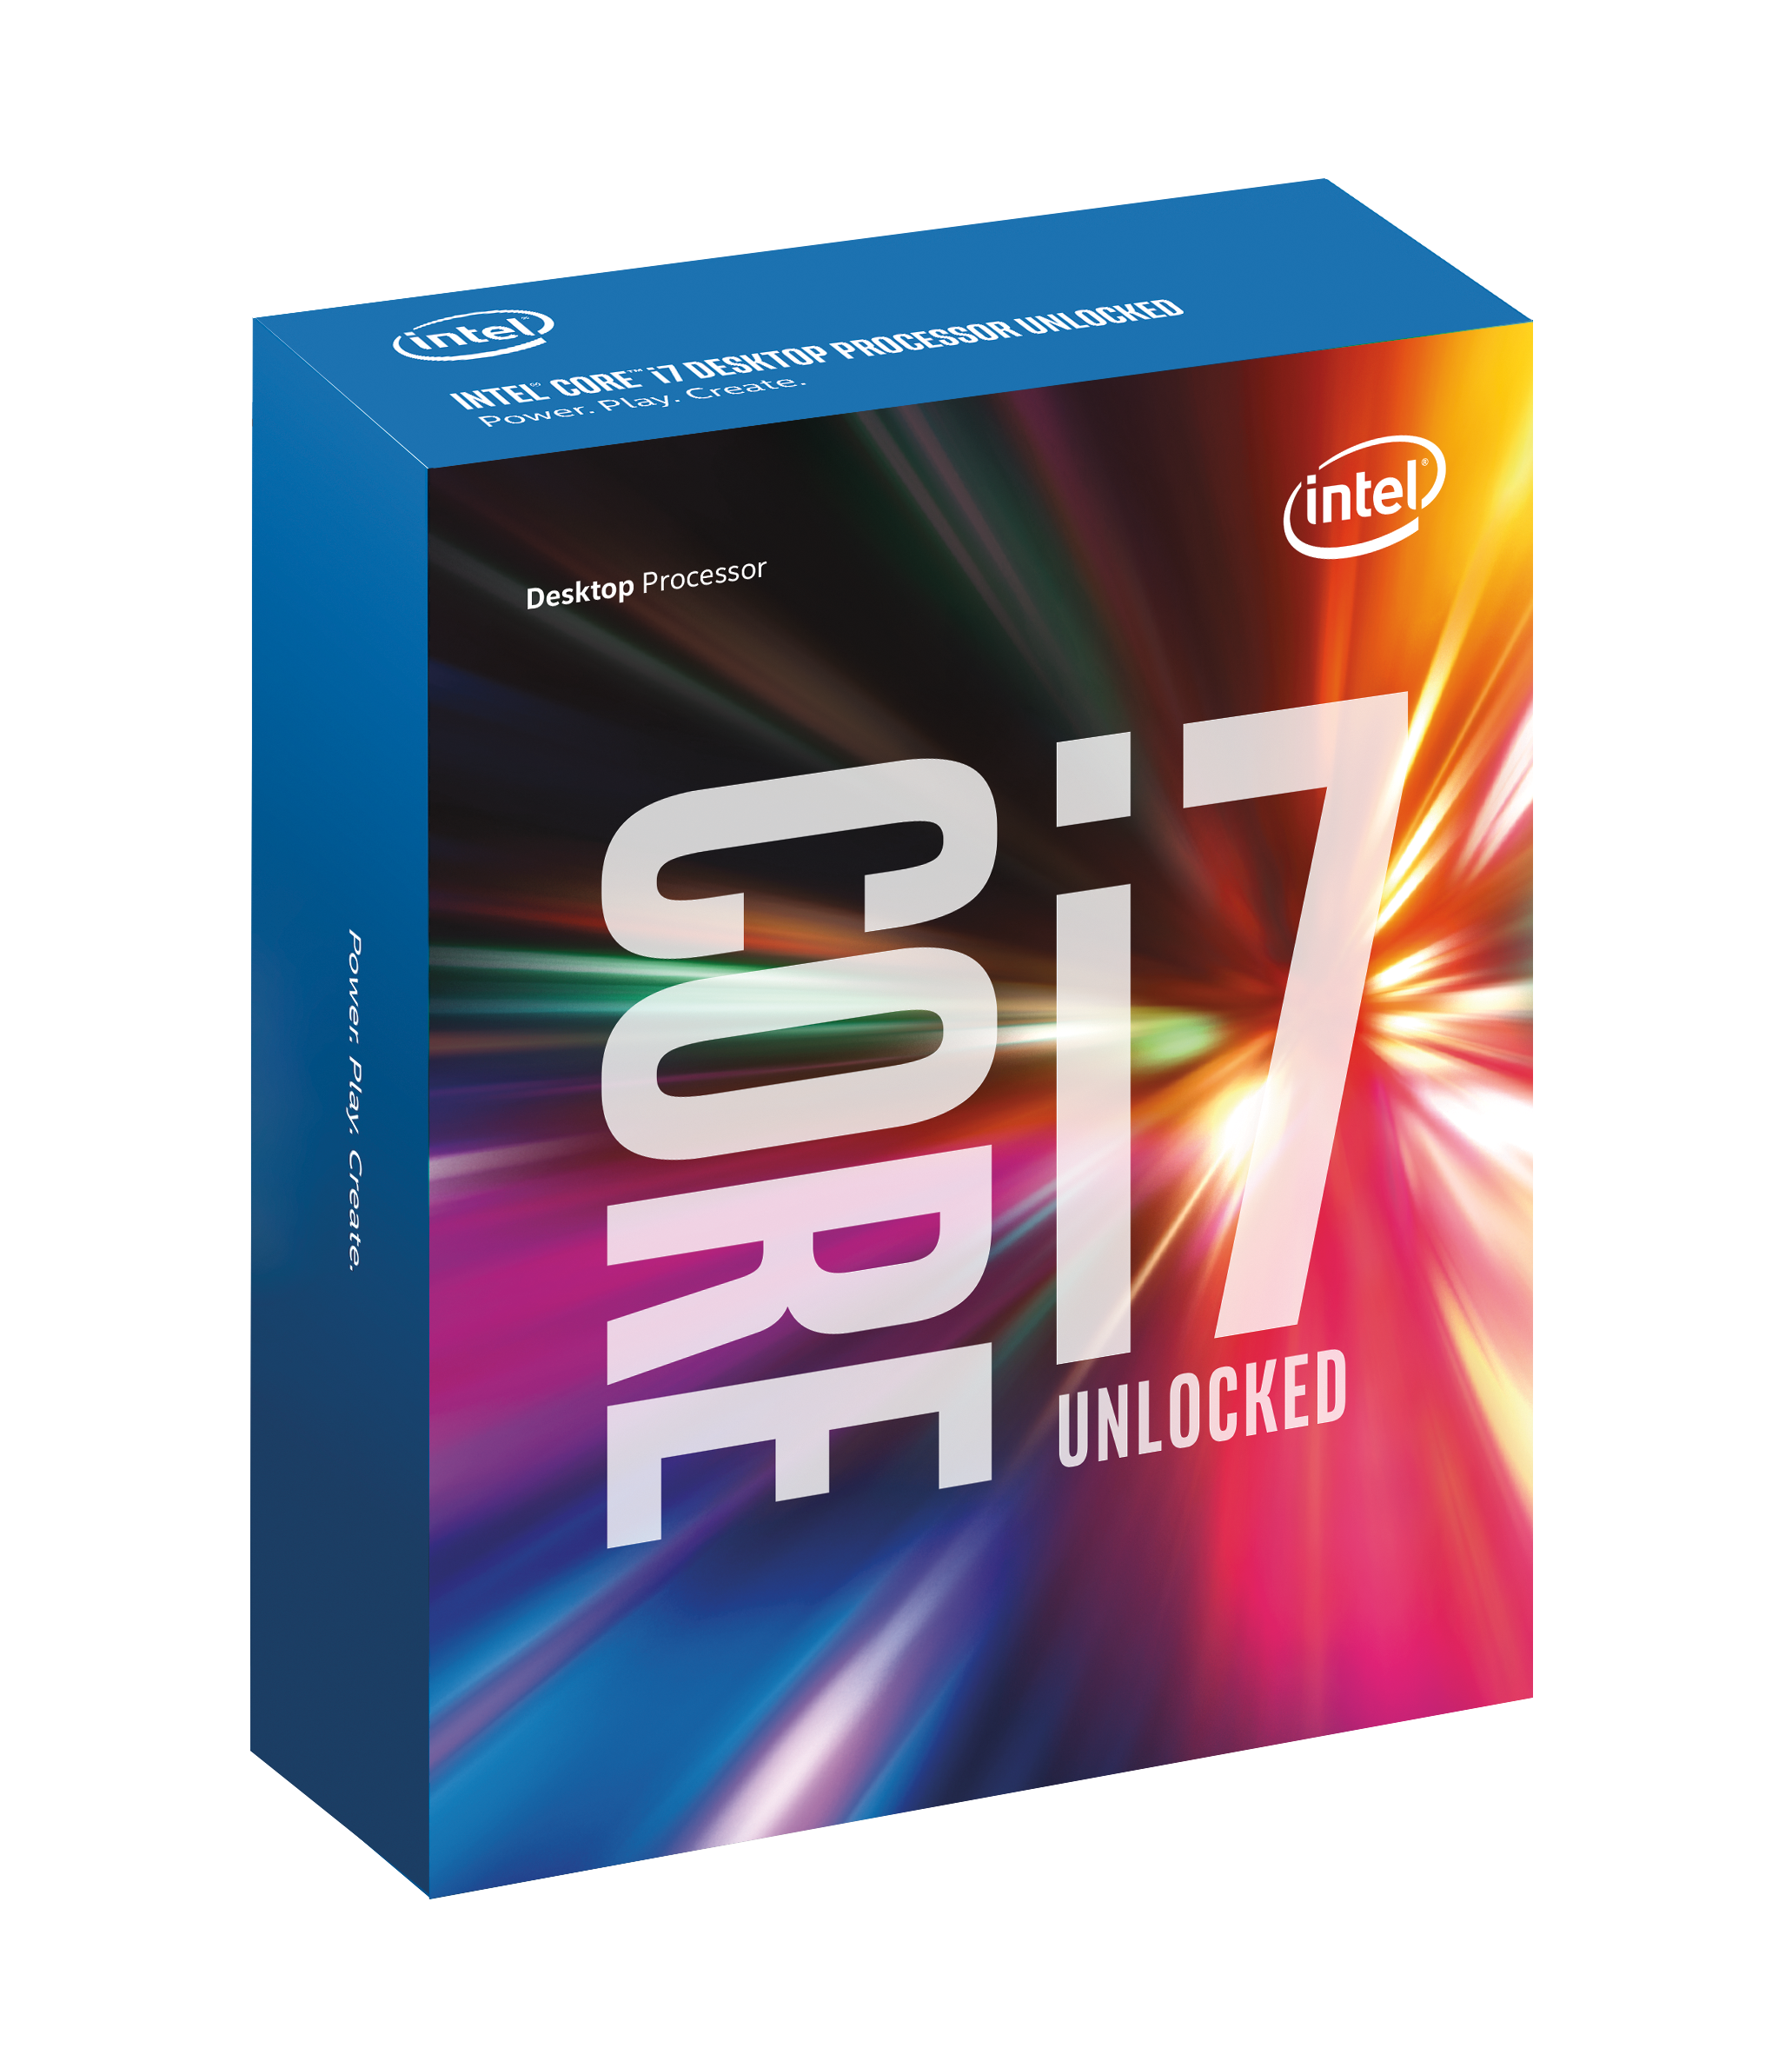 CPU INTEL Core i7-6700K (4.0GHz, 8M, LGA1151, VGA)